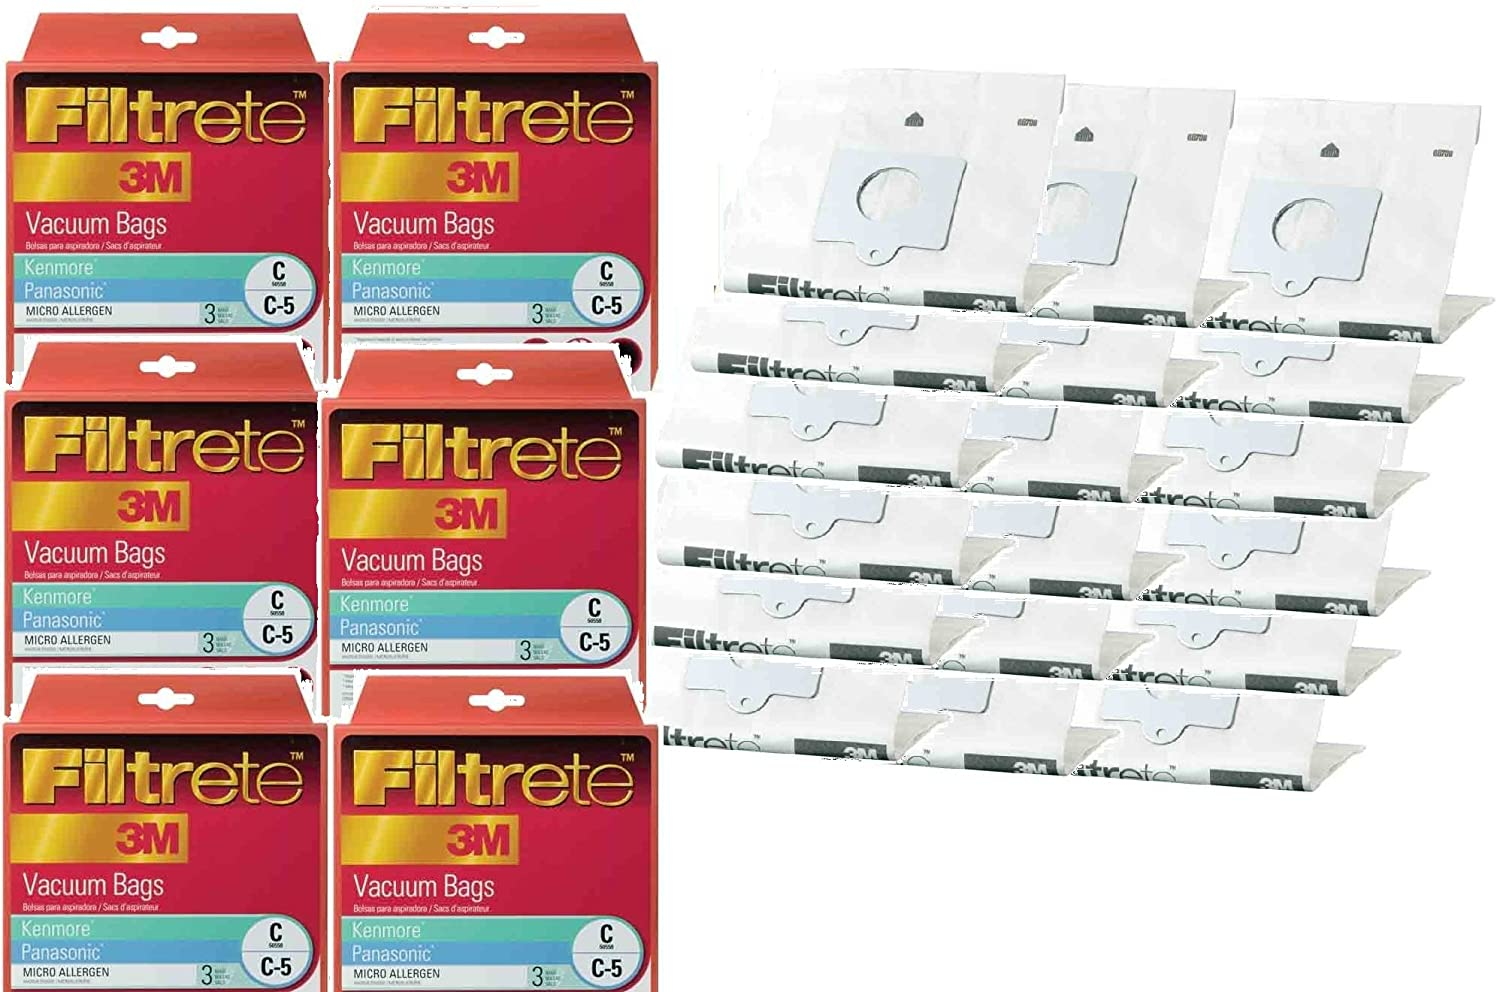 Kenmore 18 3M Filtrete Style C, Style Q 5055 20-50557 Progressive, Intuition Canister Vacuum Bags 68700A-6, 18 Bulk Buy